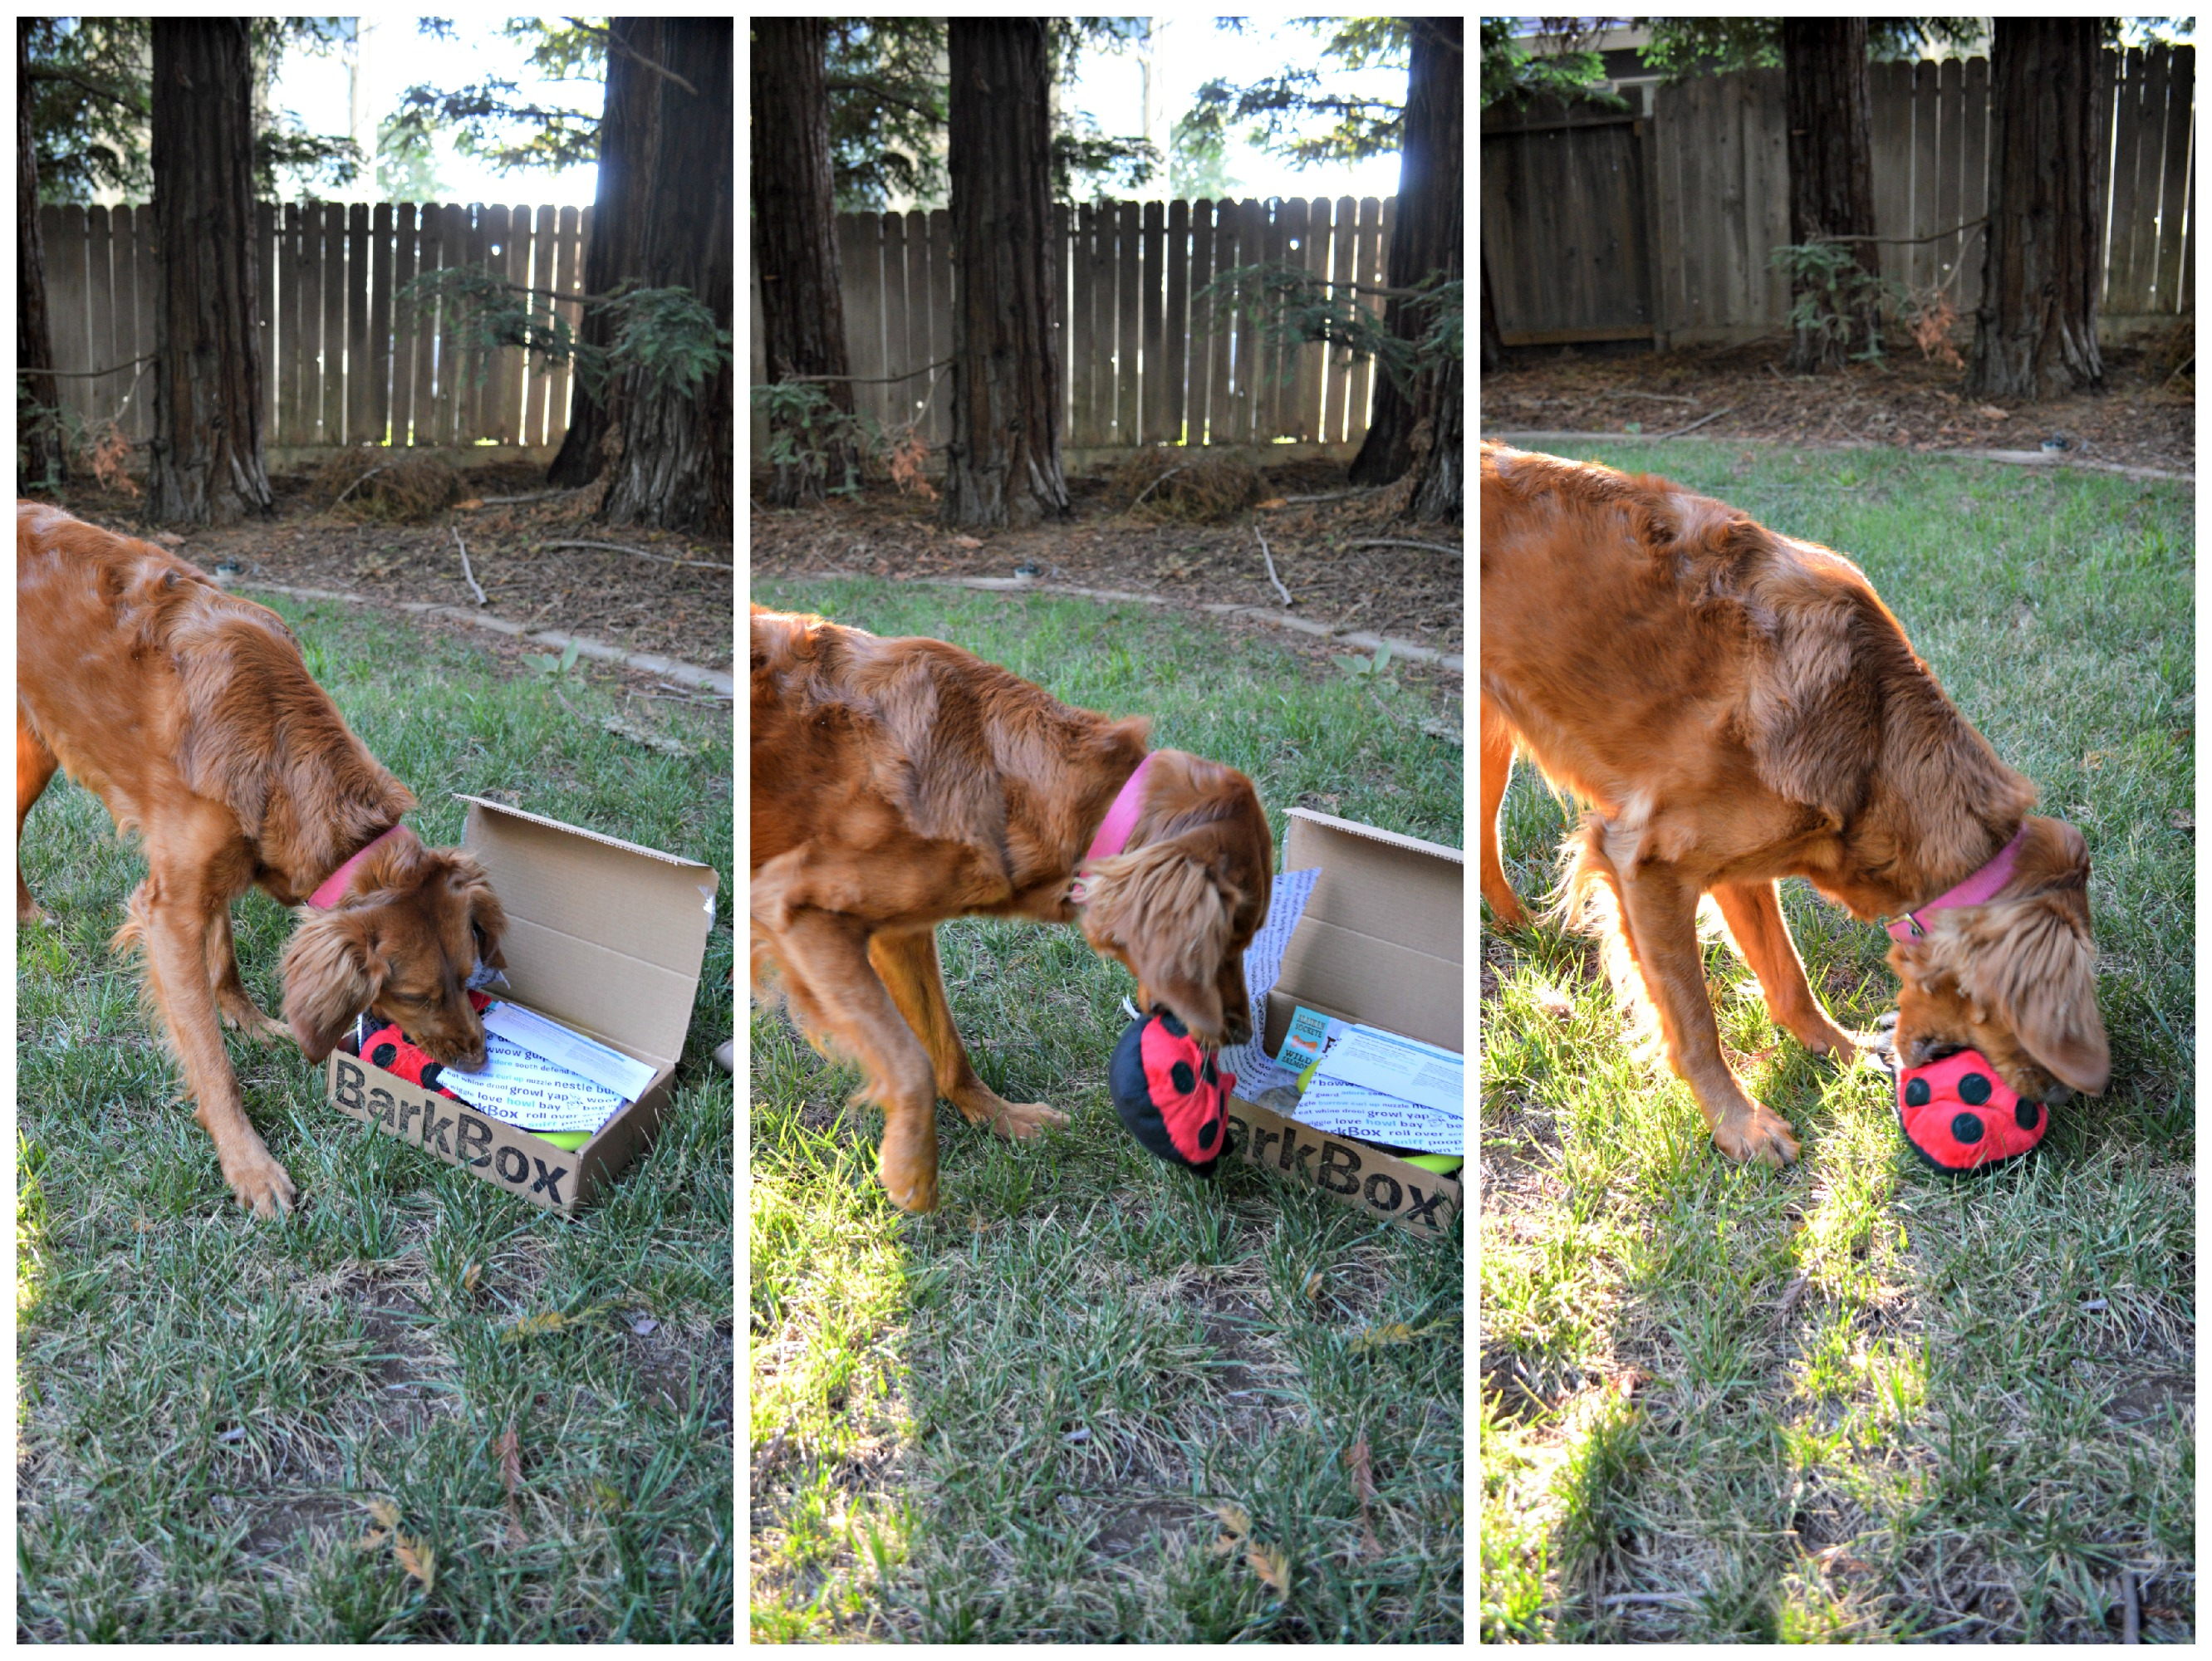 Silly Bum toy from Barkbox. A toy with junk in the trunk that crinkles and squeaks! Rosie is in love with this toy and I can't recommend it enough // Life with Rosie